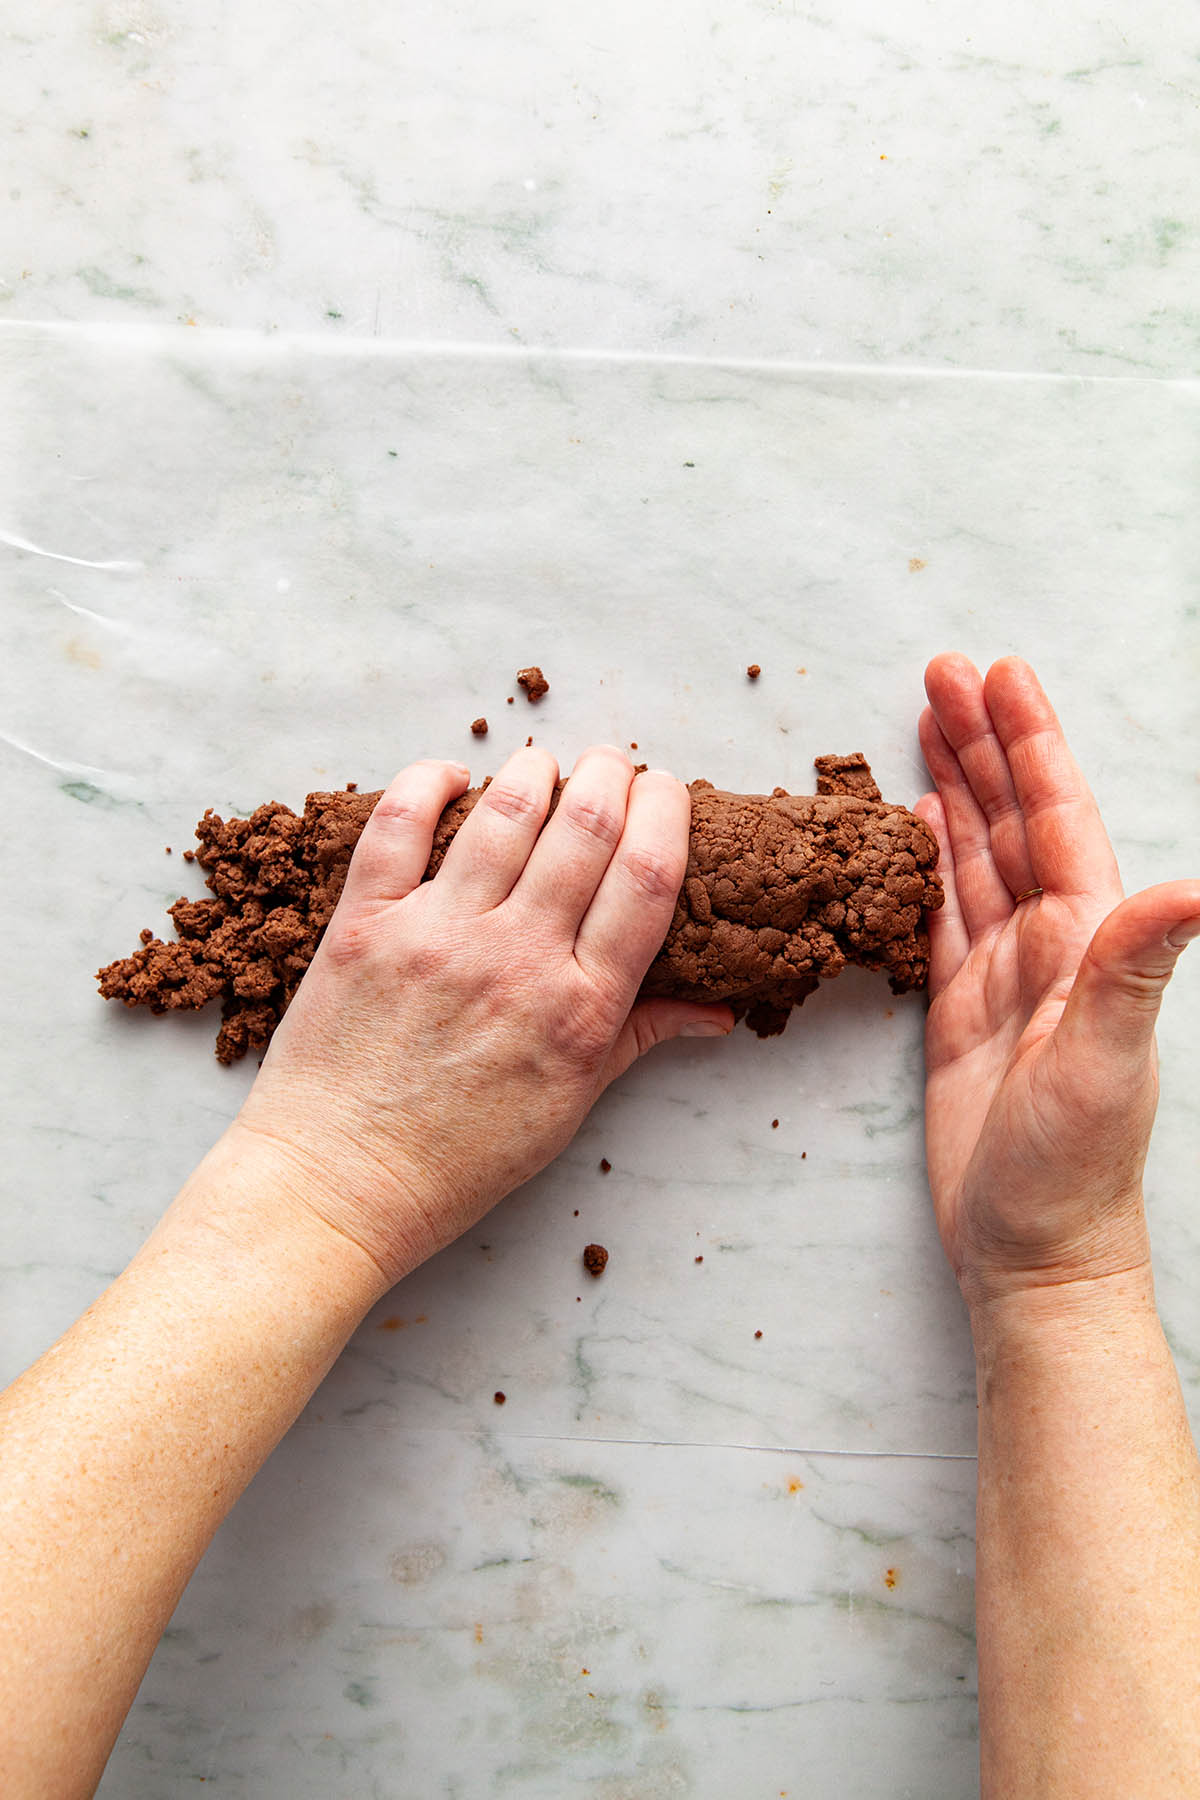 Hands shaping chocolate cookie dough into a log.